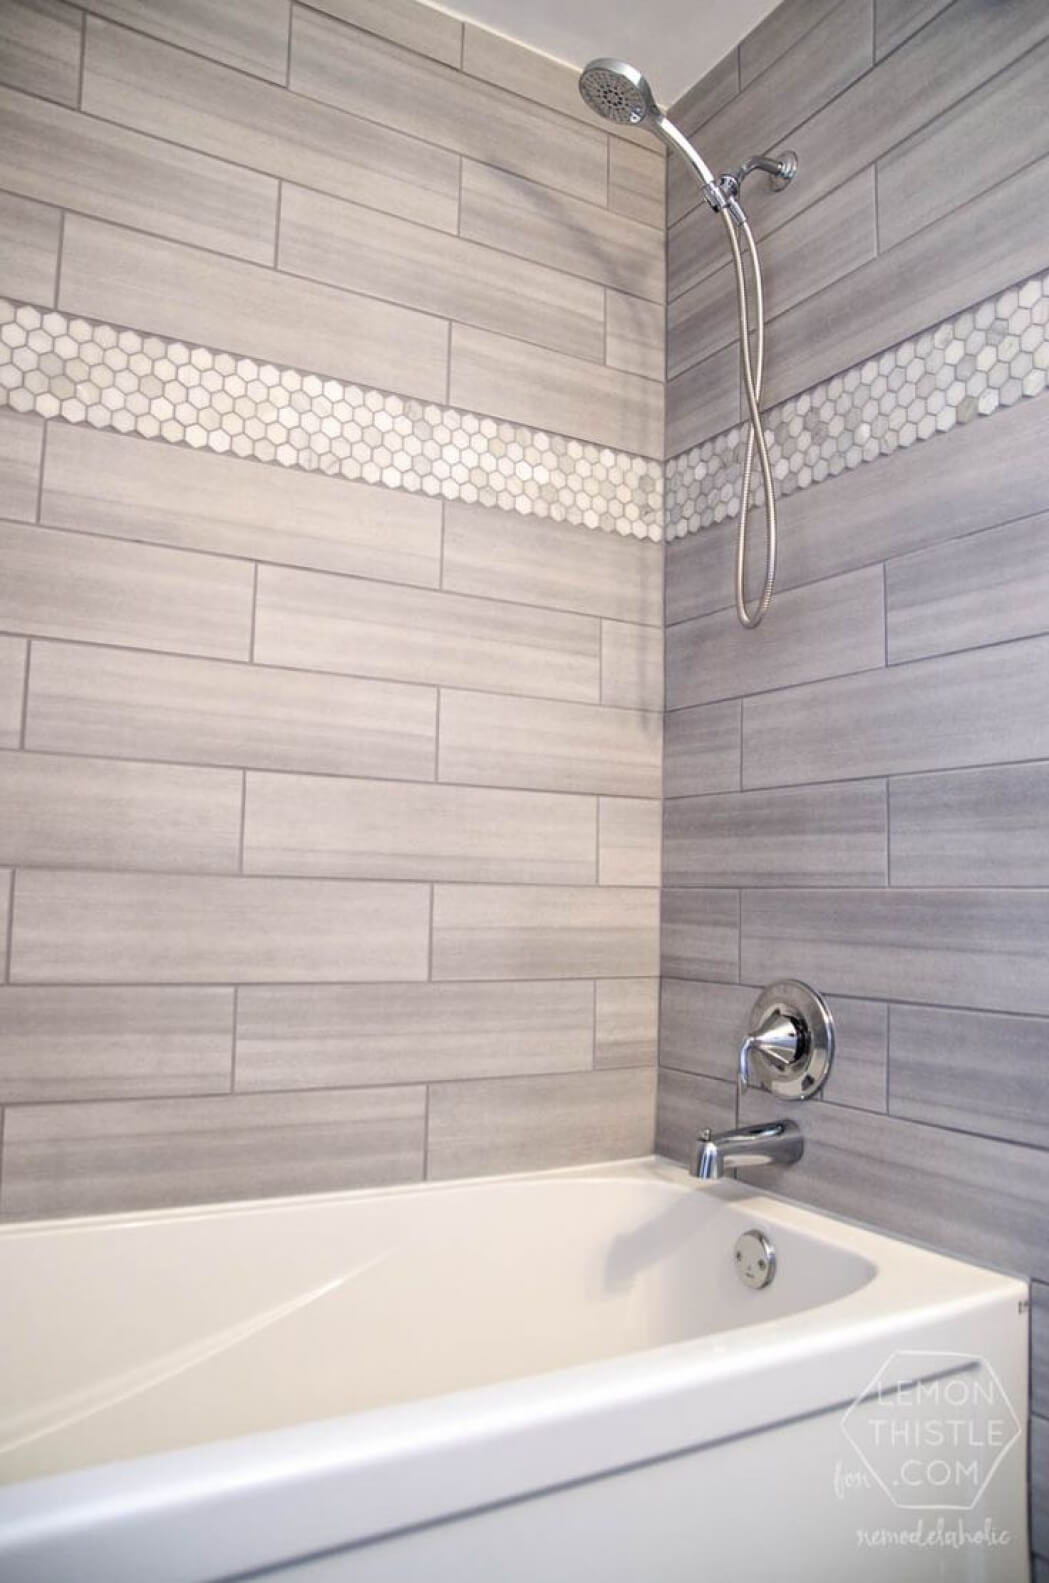 Lapland Pearl Two-Tone Tile Pattern